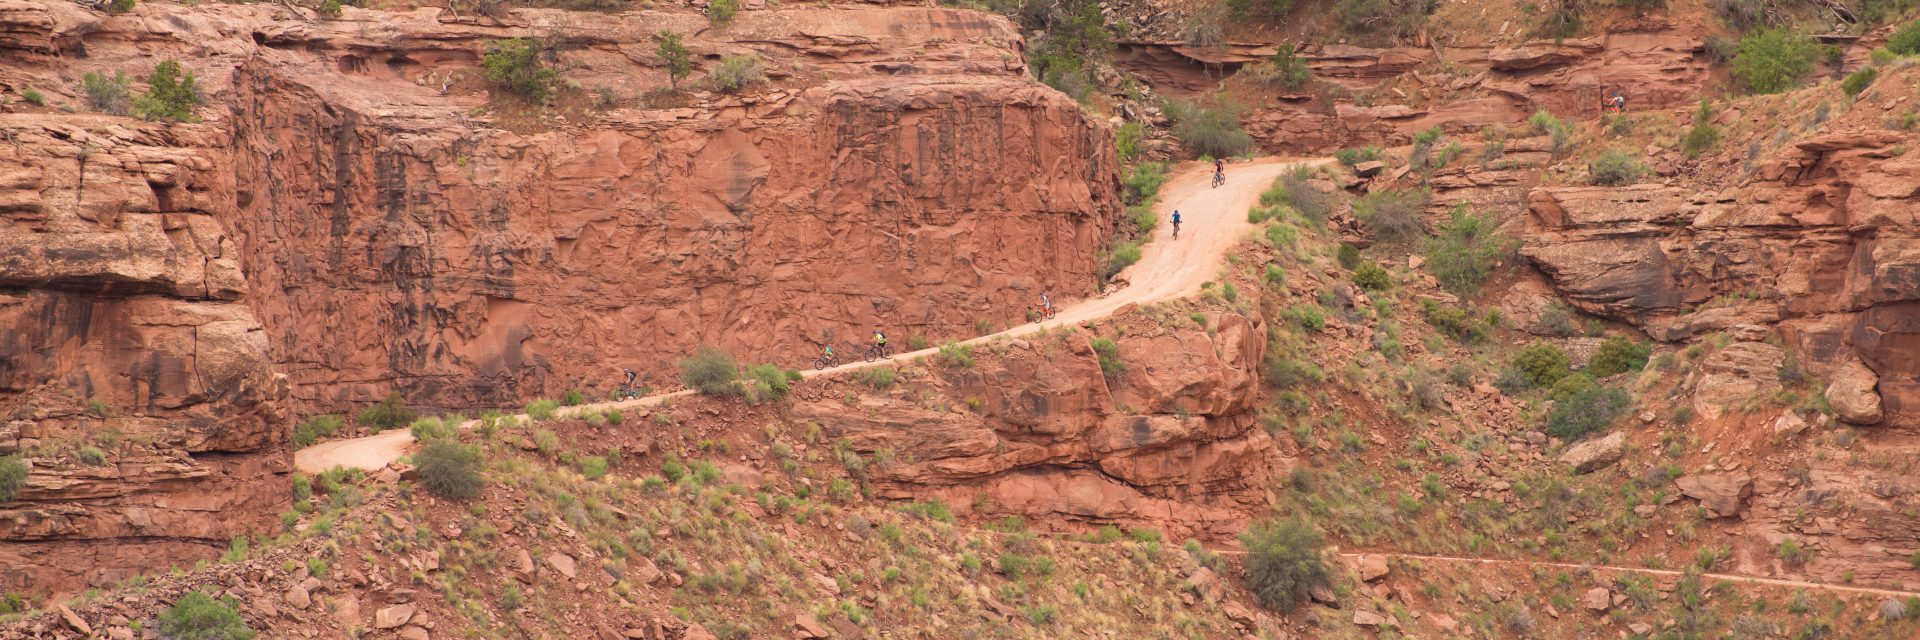 Top of Shafer Trail swtichbacks, included in White Rim and Canyonlands Full Day tours